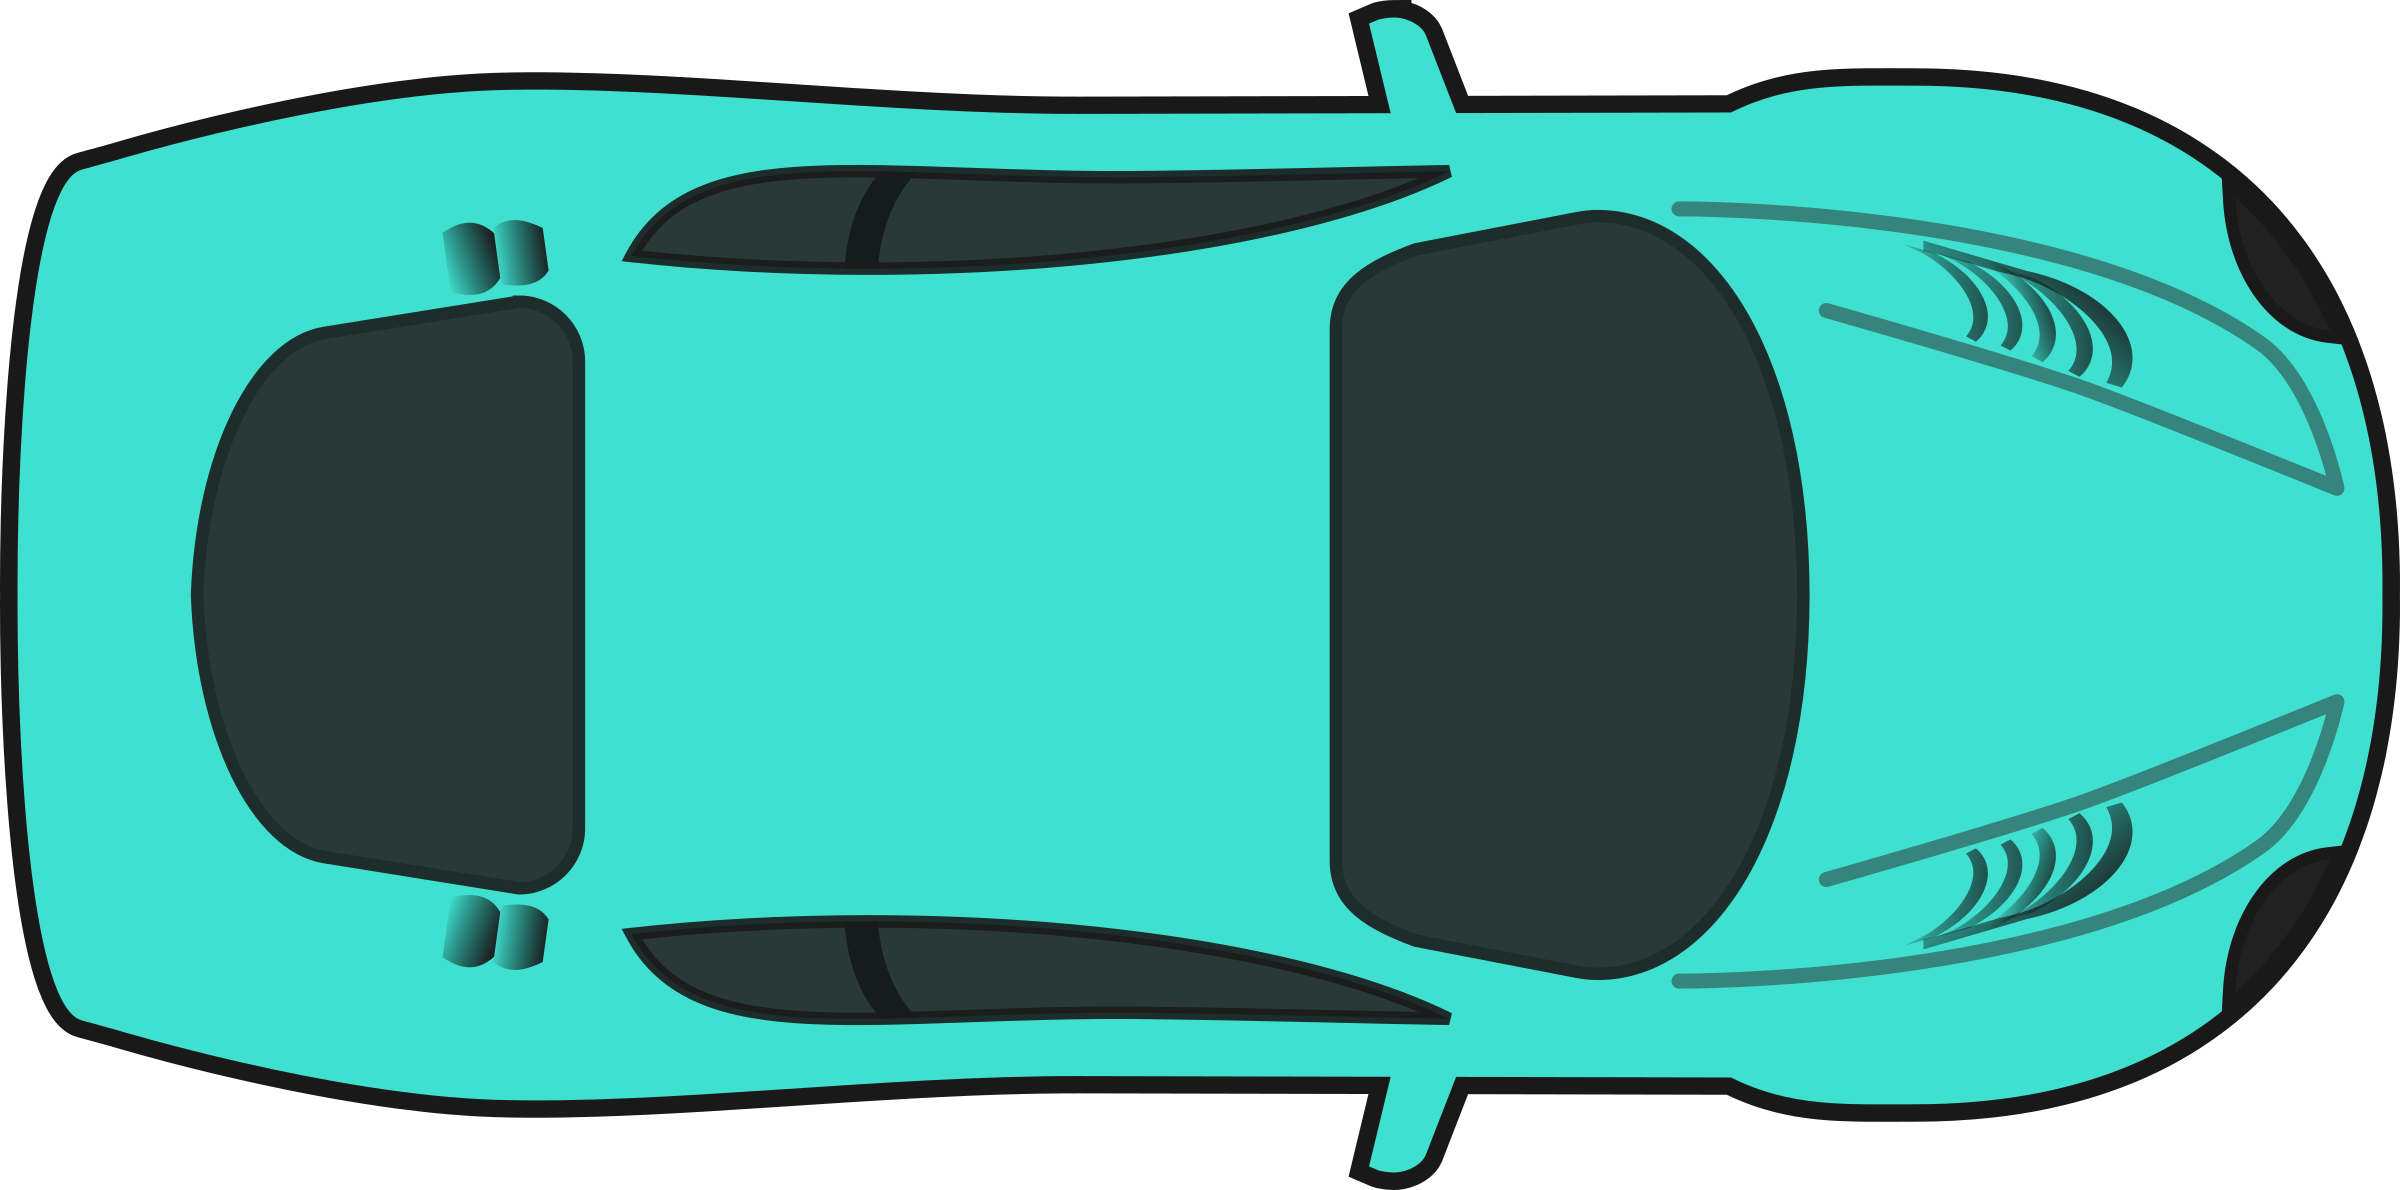 Turquois Racing Car (Top View) by qubodup